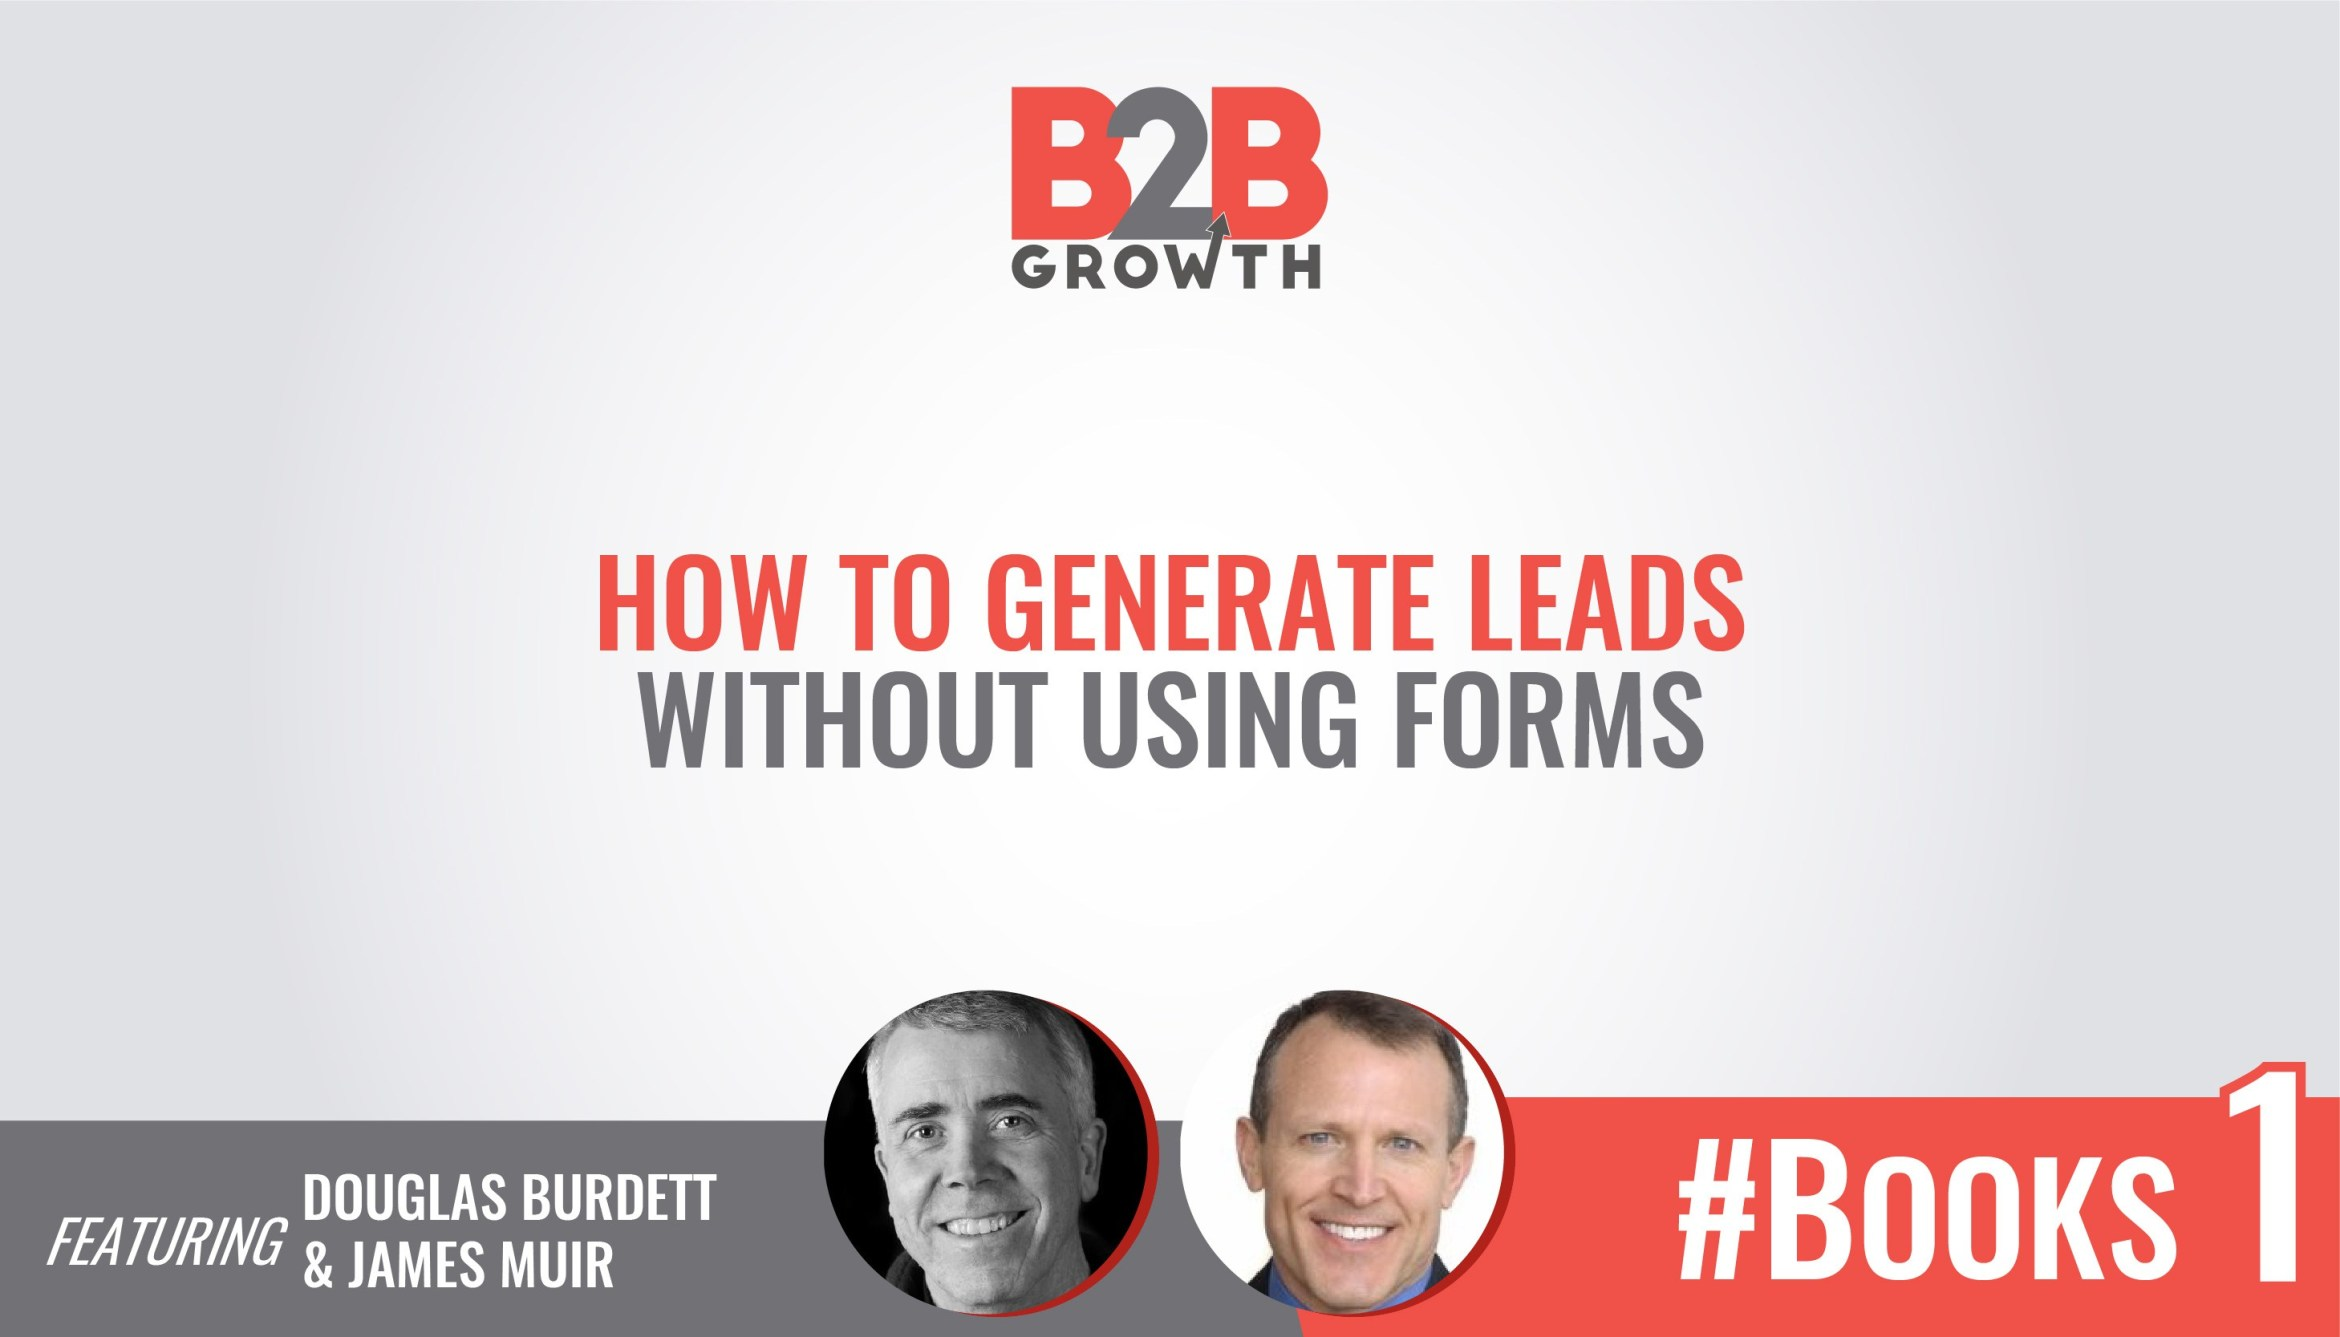 B2B_Growth_Books_Burdett_Muir_Ep_1